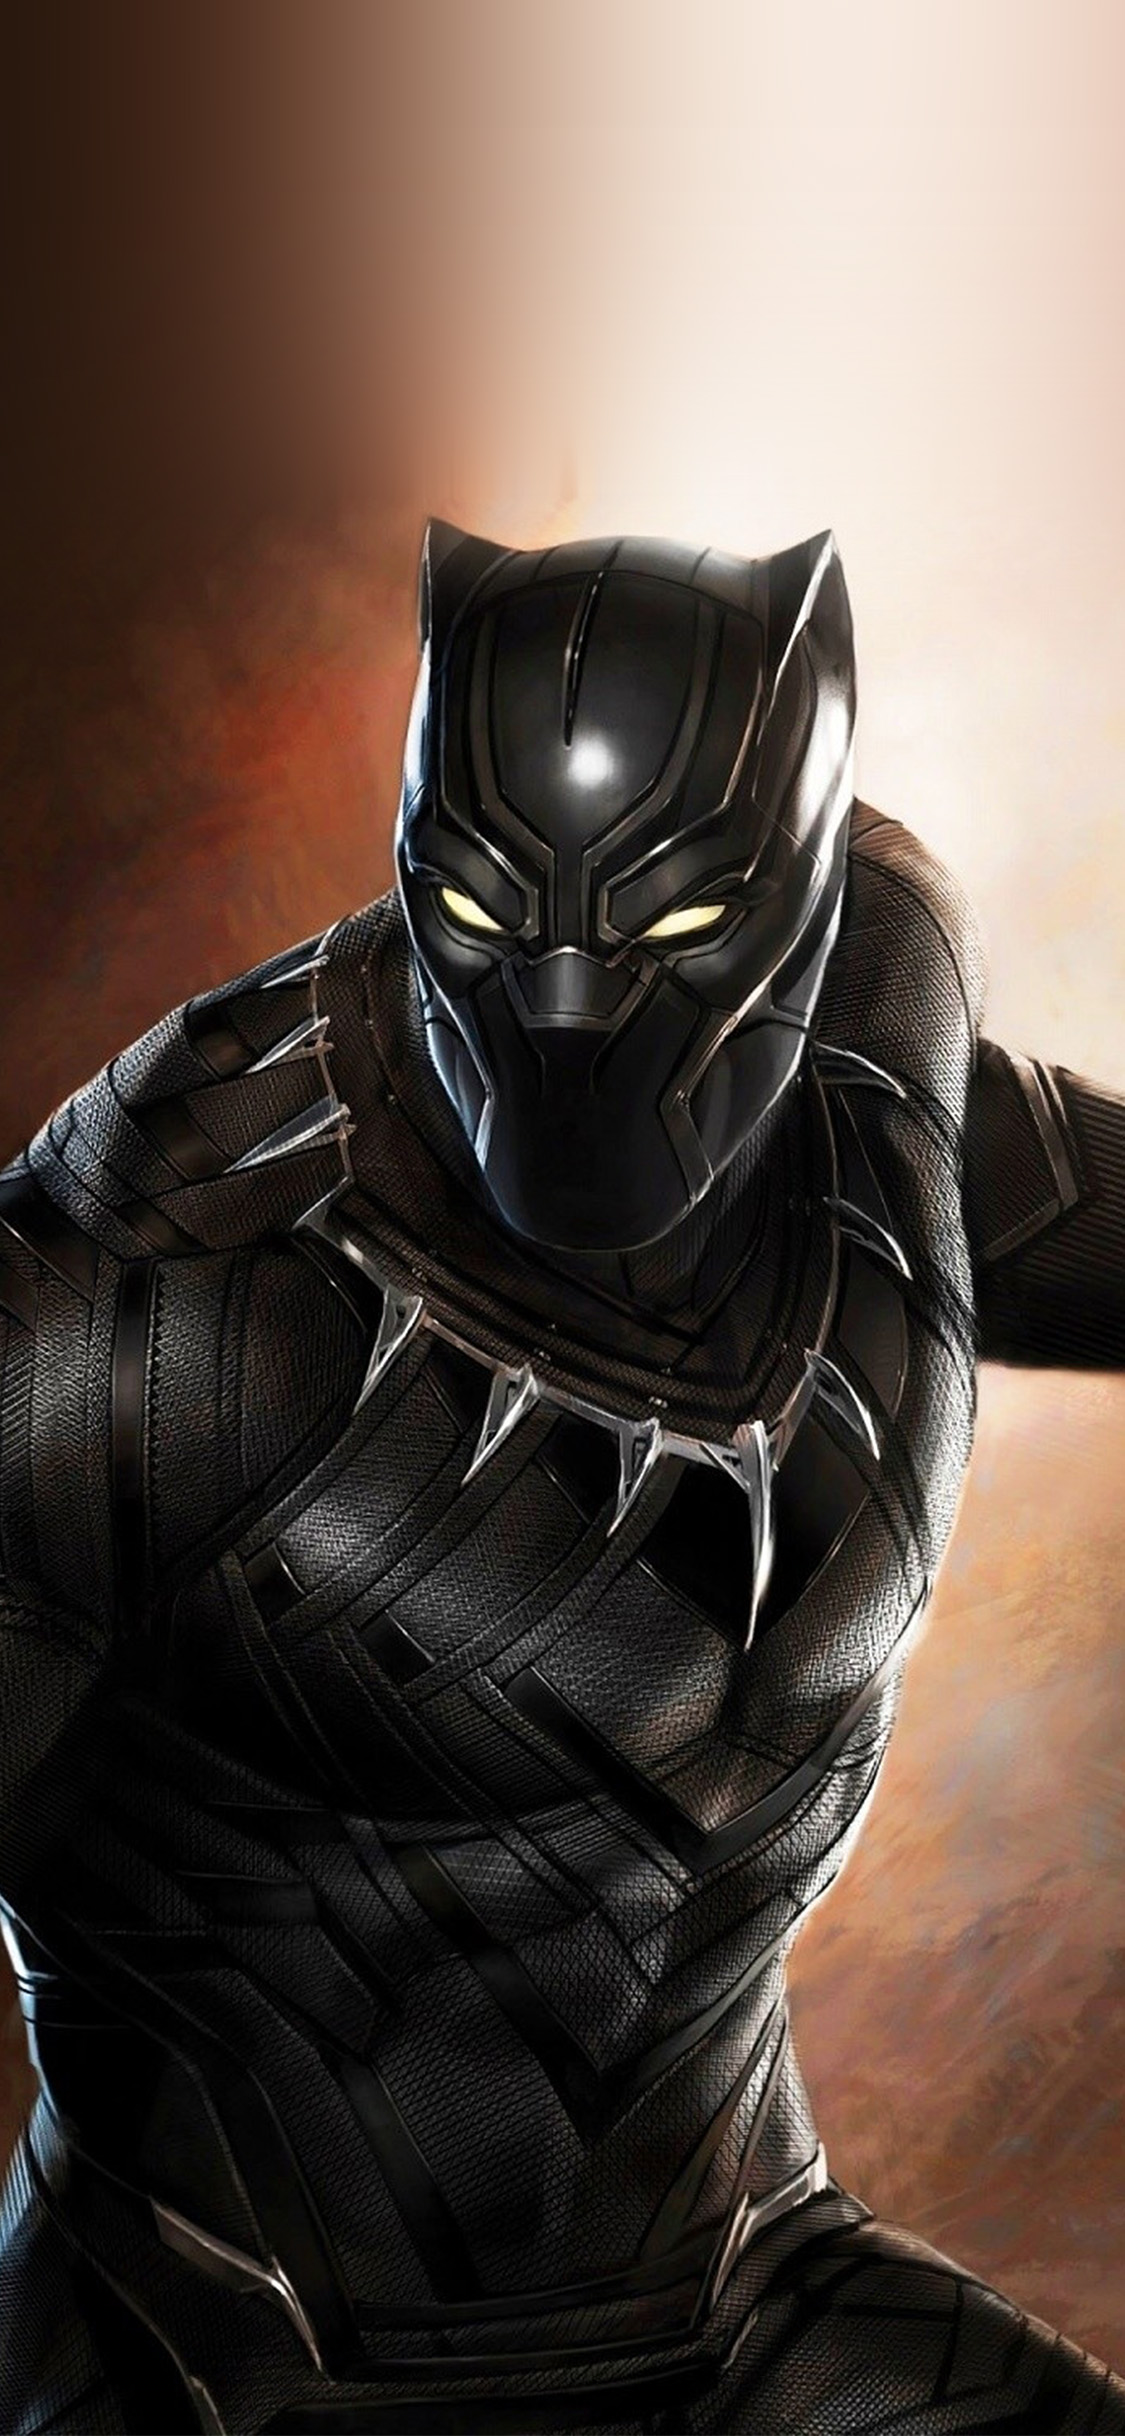 iPhonexpapers.com-Apple-iPhone-wallpaper-bd99-blackpanther-hero-marvel-art-illustration